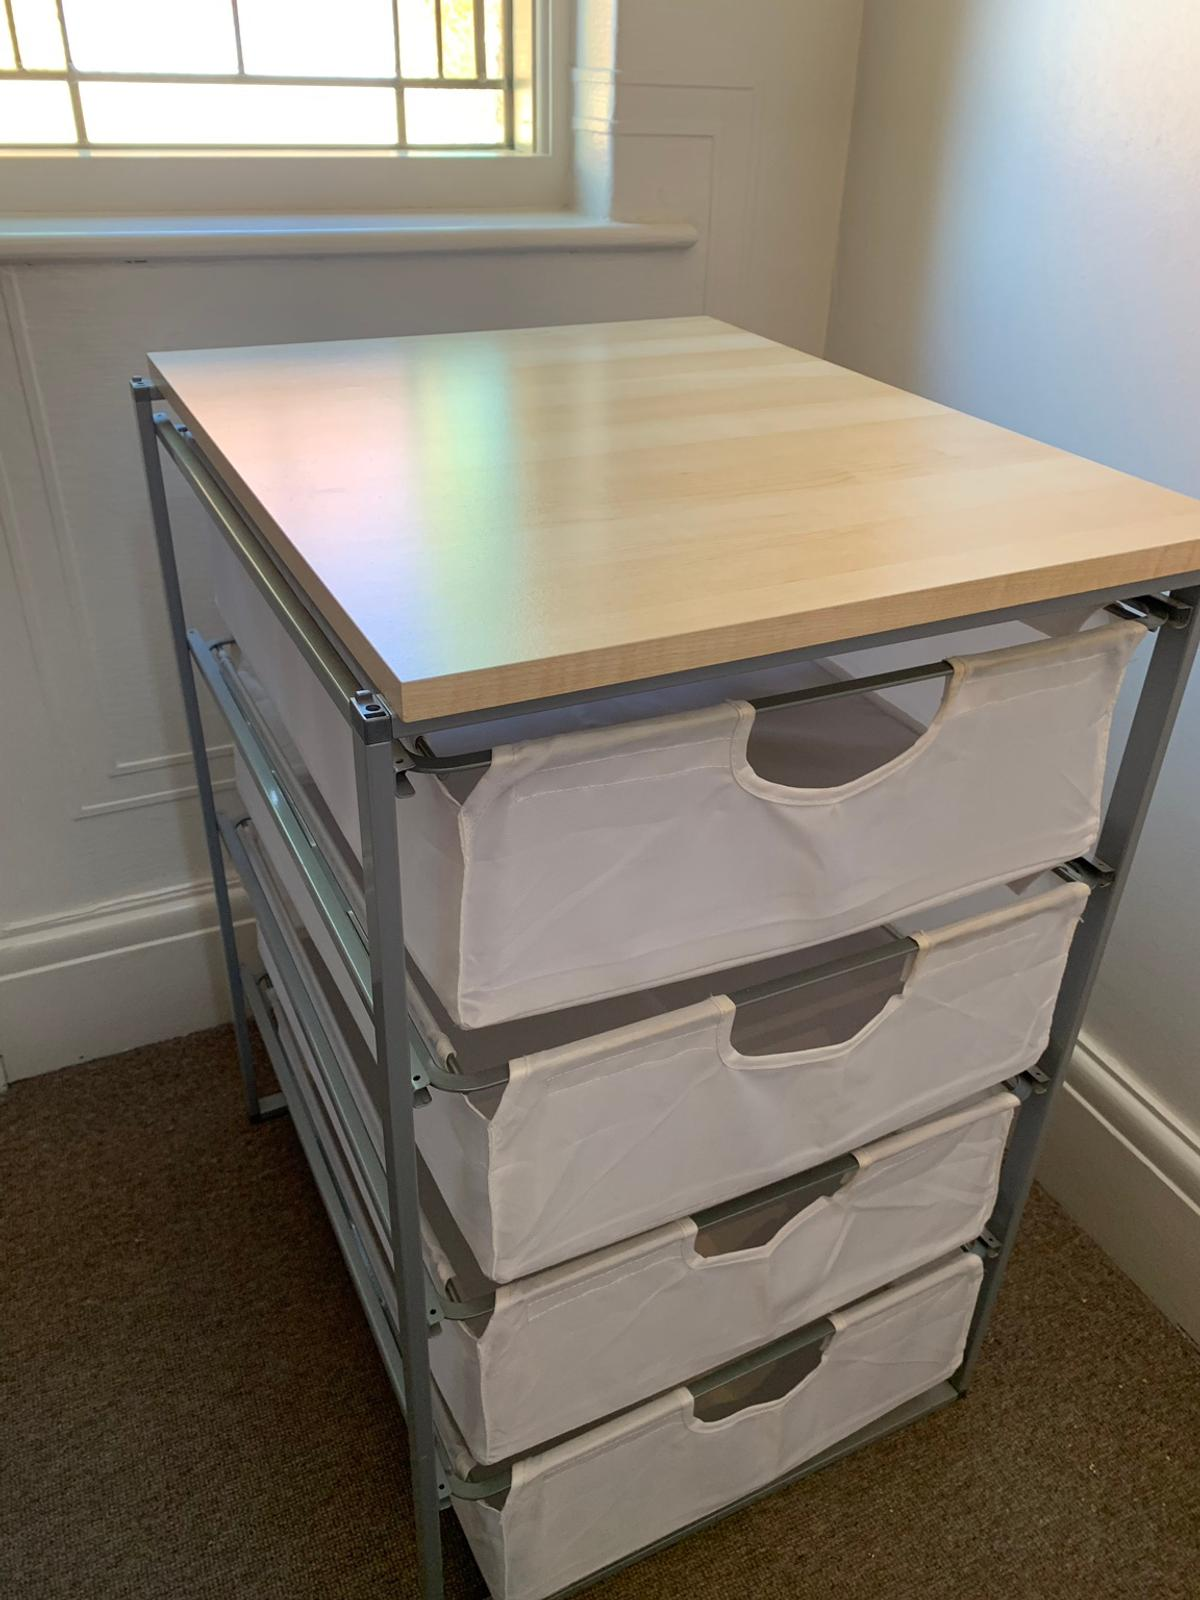 Ikea Antonius 4 Drawer Storage Unit In S65 Rotherham For 2000 For